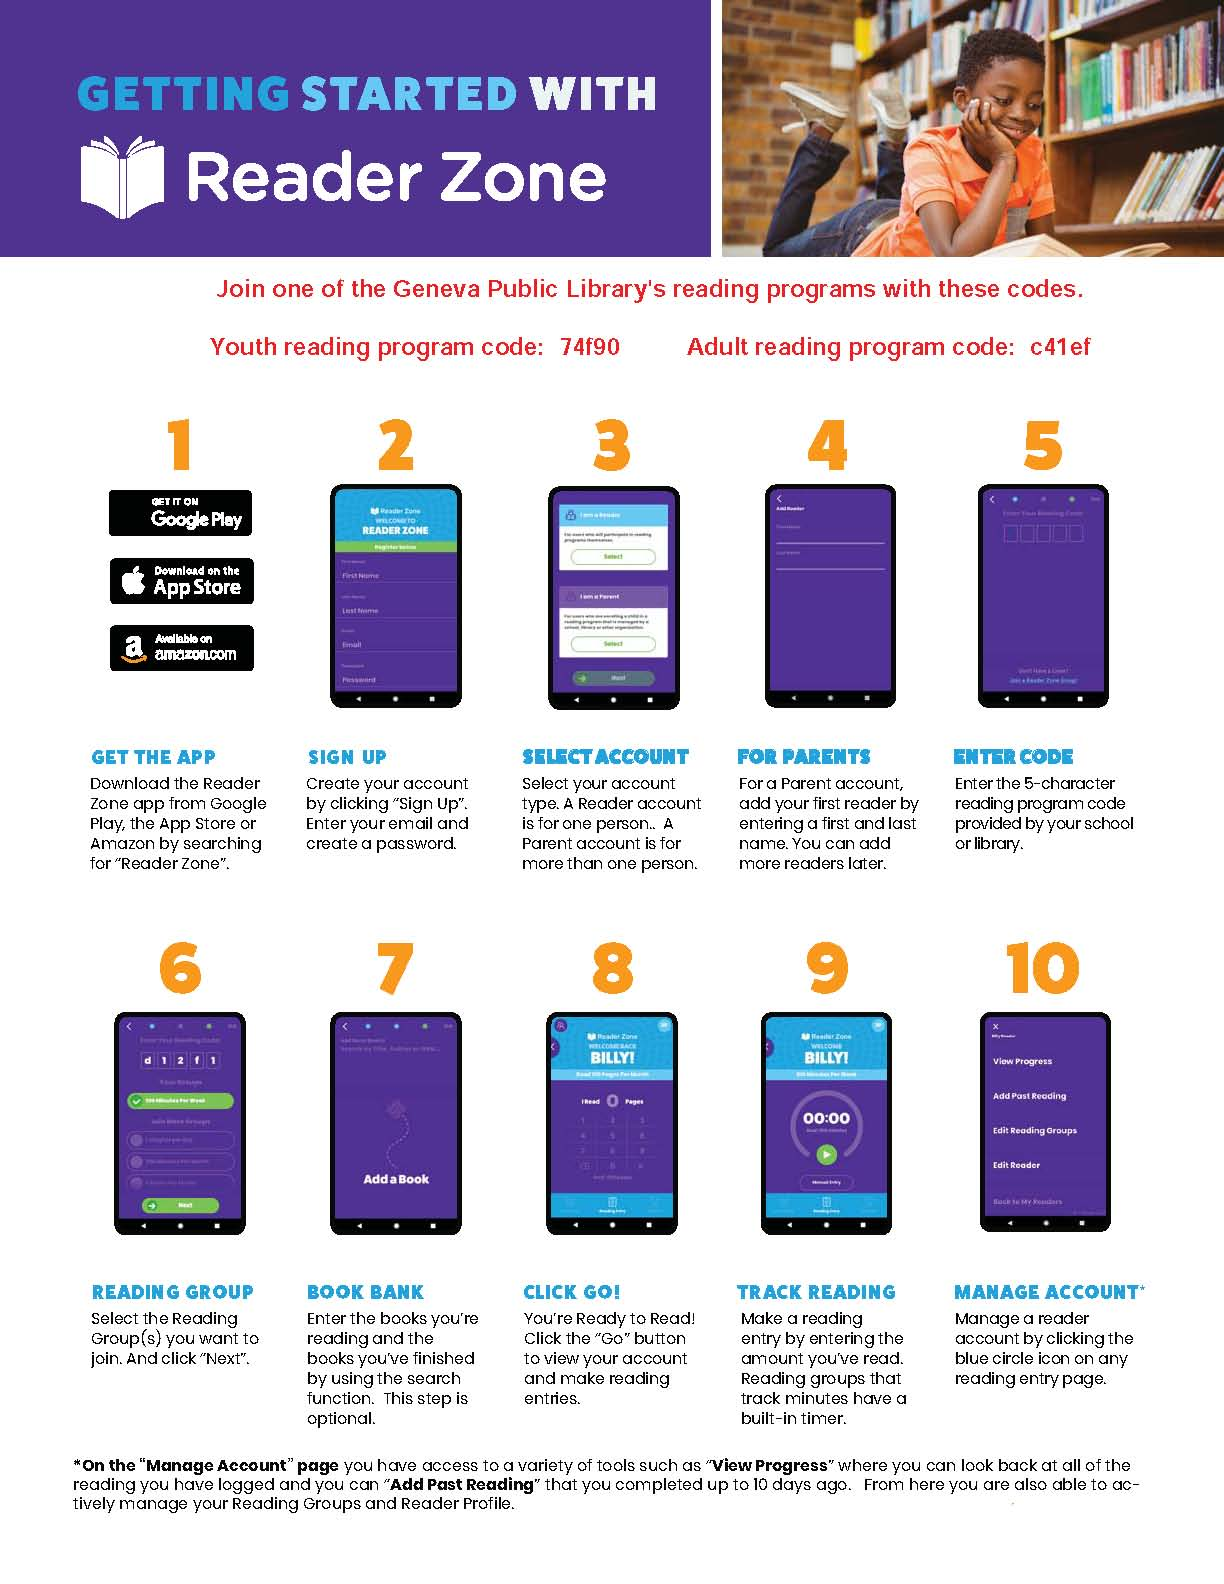 Reader Zone getting started guide